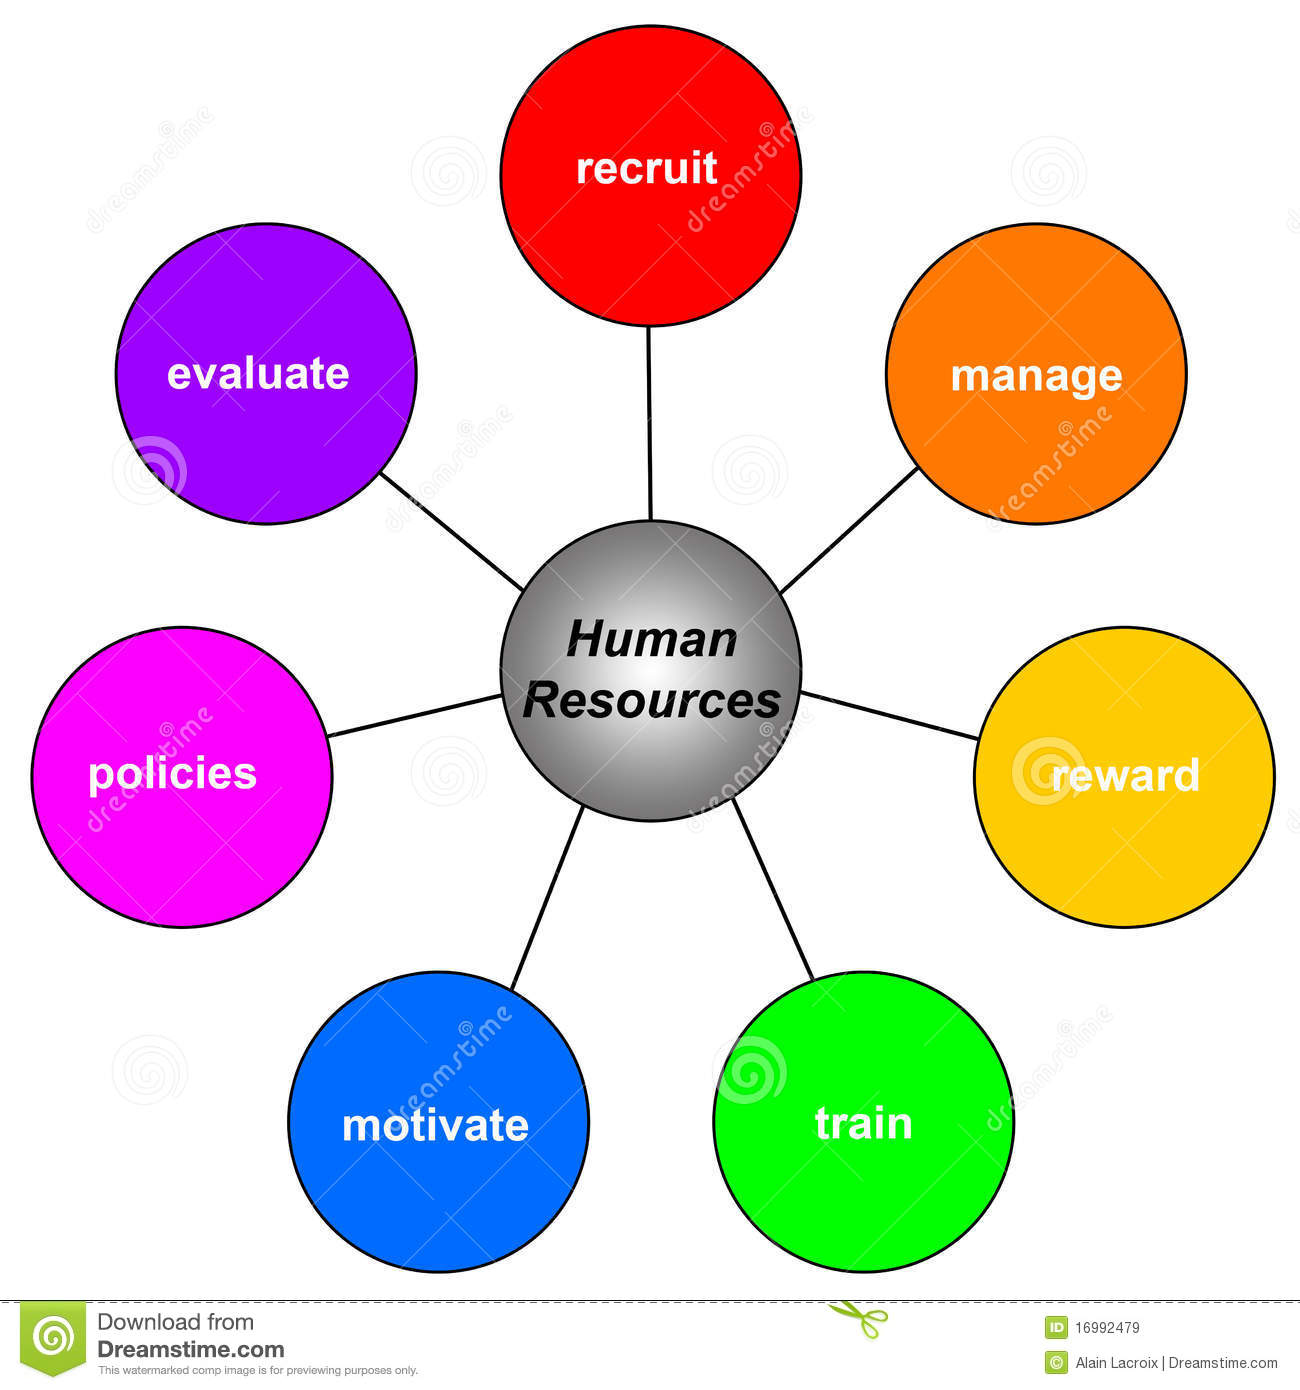 Human Resources: Human Resources Royalty Free Stock Images